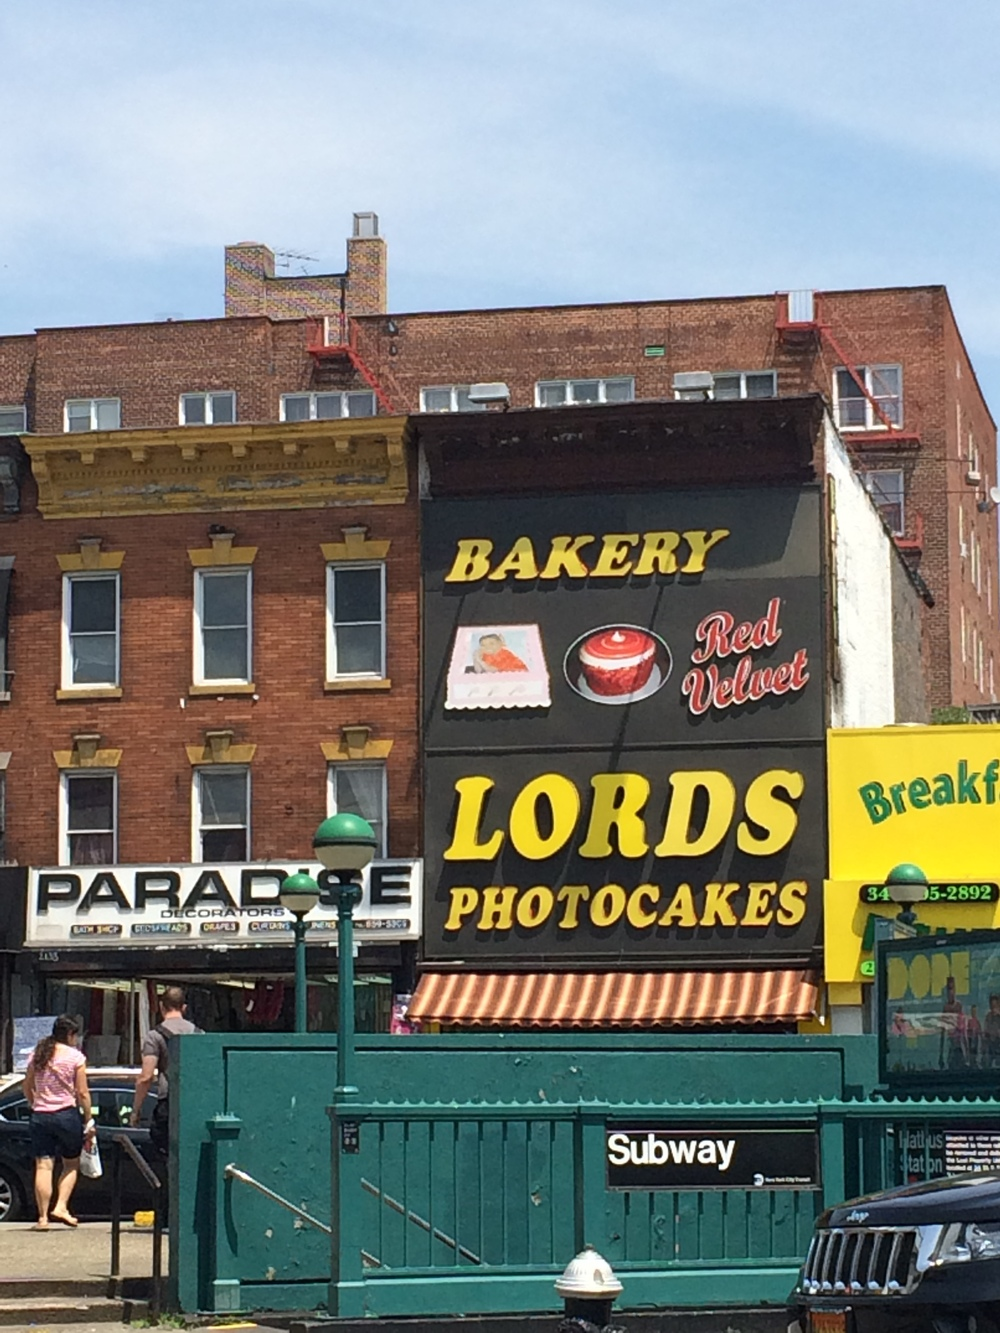 Lord's Photocakes and Bakery. Nostrand Ave, Brooklyn, 2015